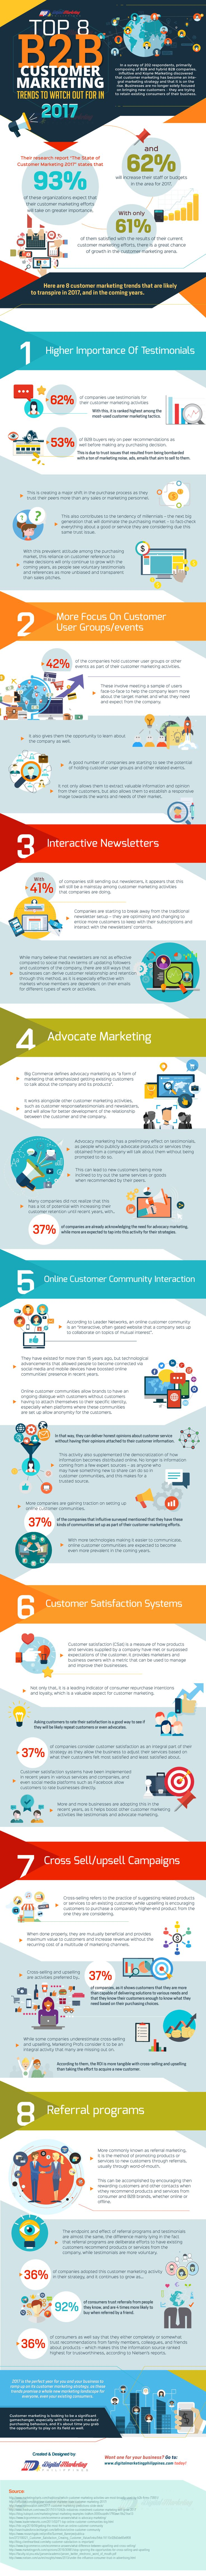 8 Customer Marketing Tips for B2B Brands [Infographic] (By @HubSpot) #b2bmarketing #infographic #smallbusiness